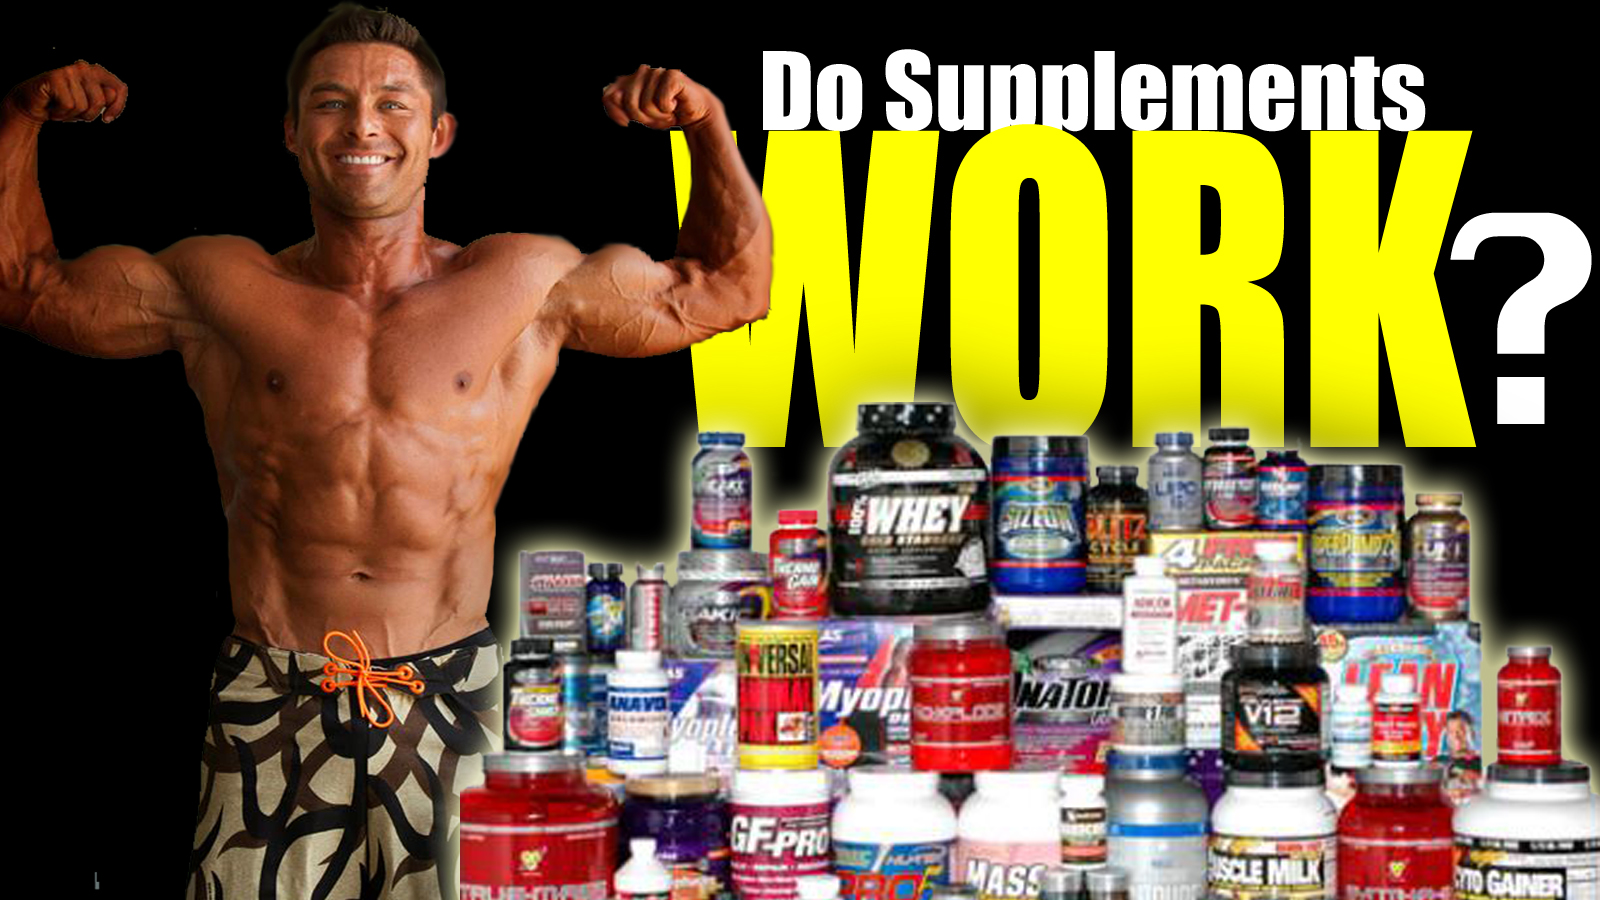 ZAC GRIFFITH DO SUPPLEMENTS REALLY WORK?